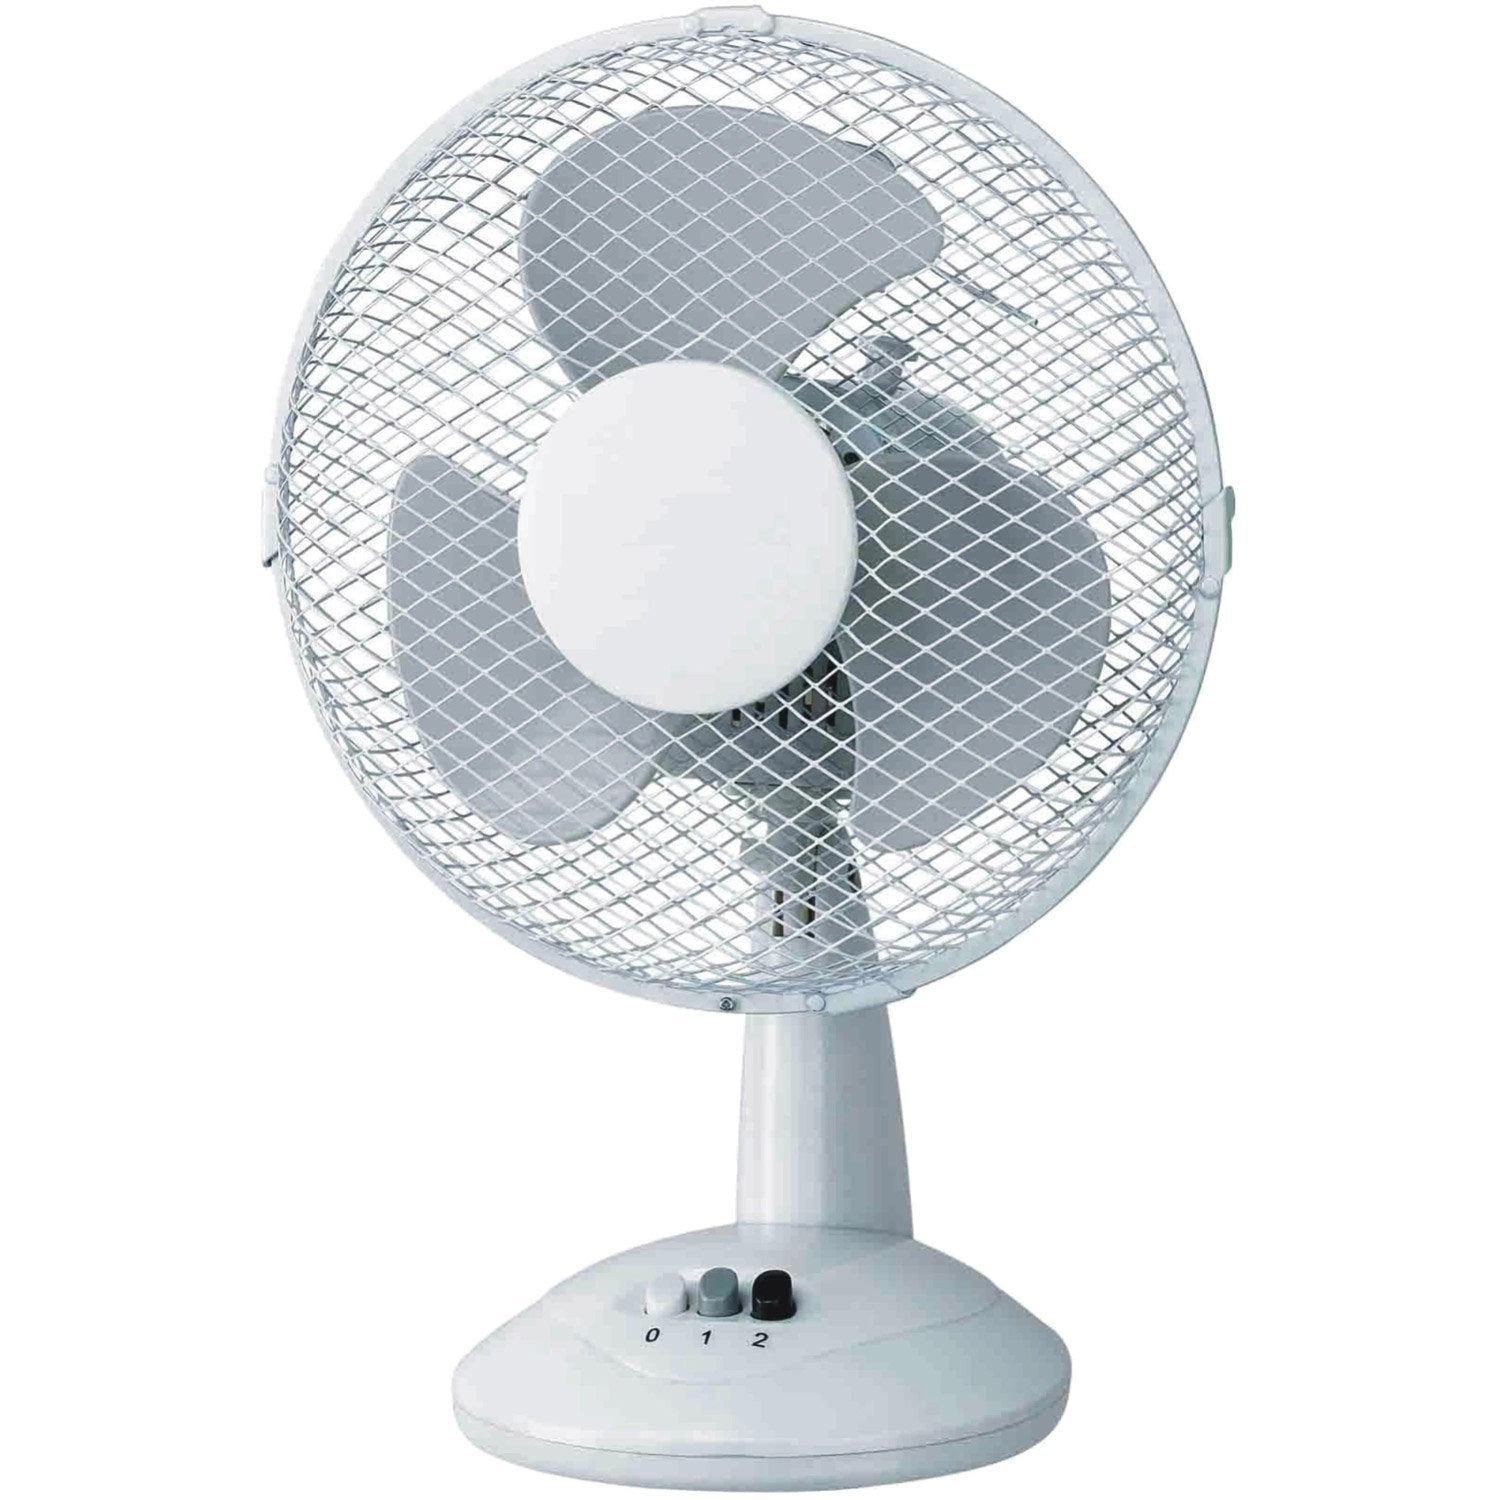 Ventilateur leroy merlin - Ventilateur chambre de culture ...